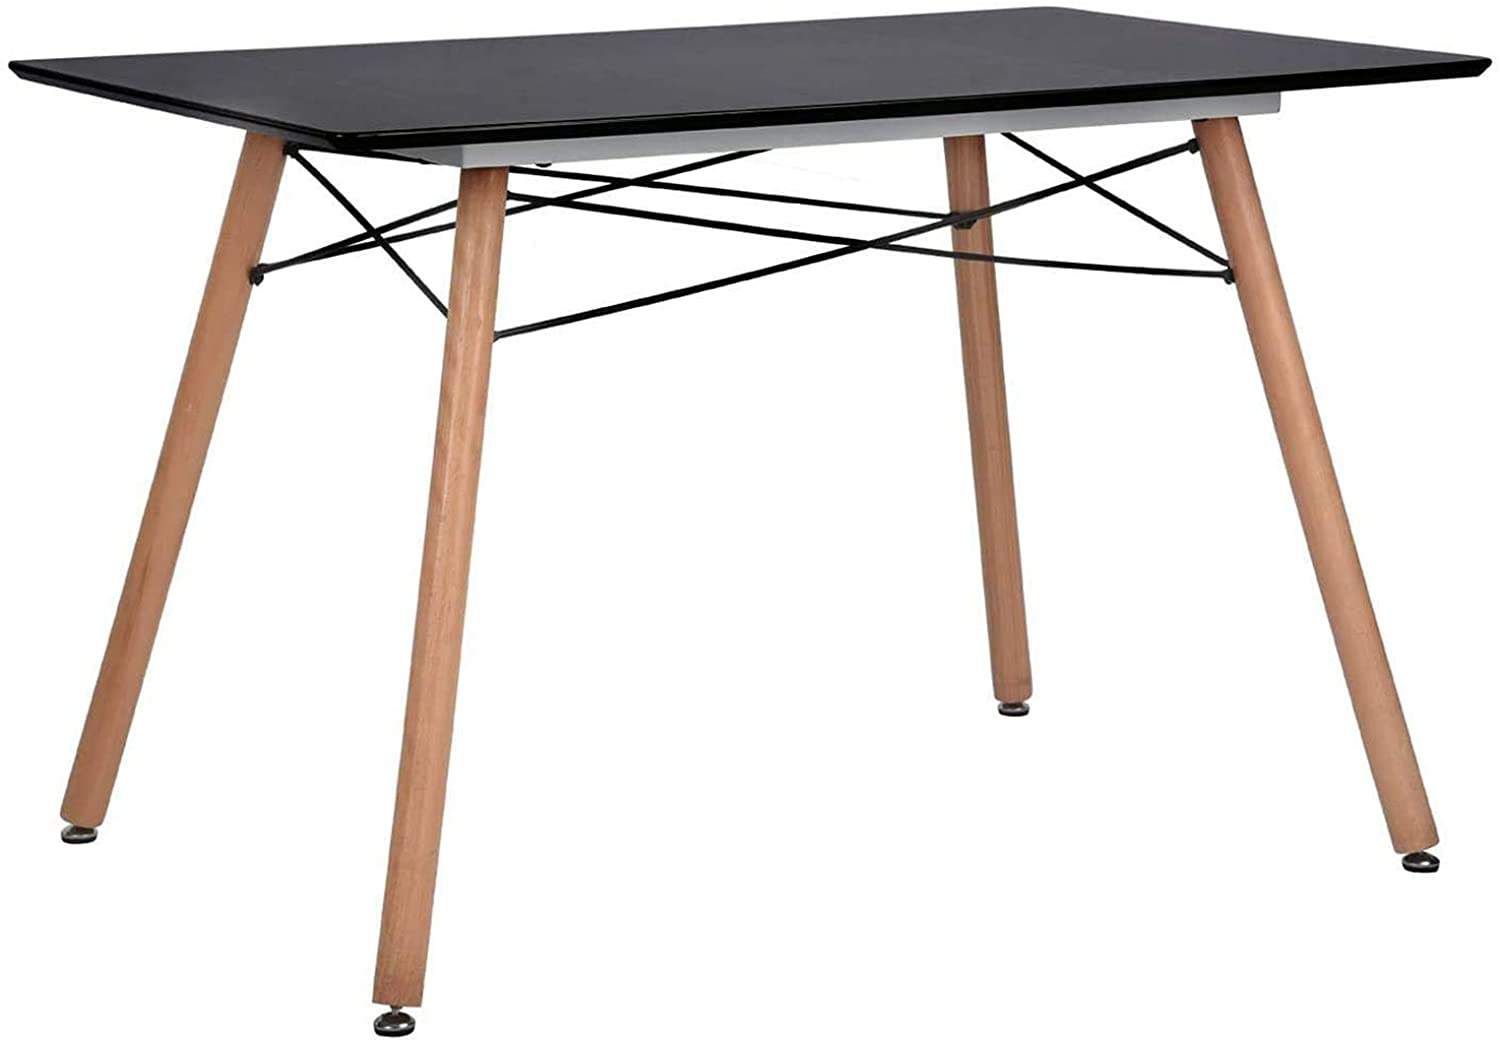 GreenForest Dining Table Rectangular Top with Wooden Legs Modern Leisure Coffee Table 44'' x 30'' Black